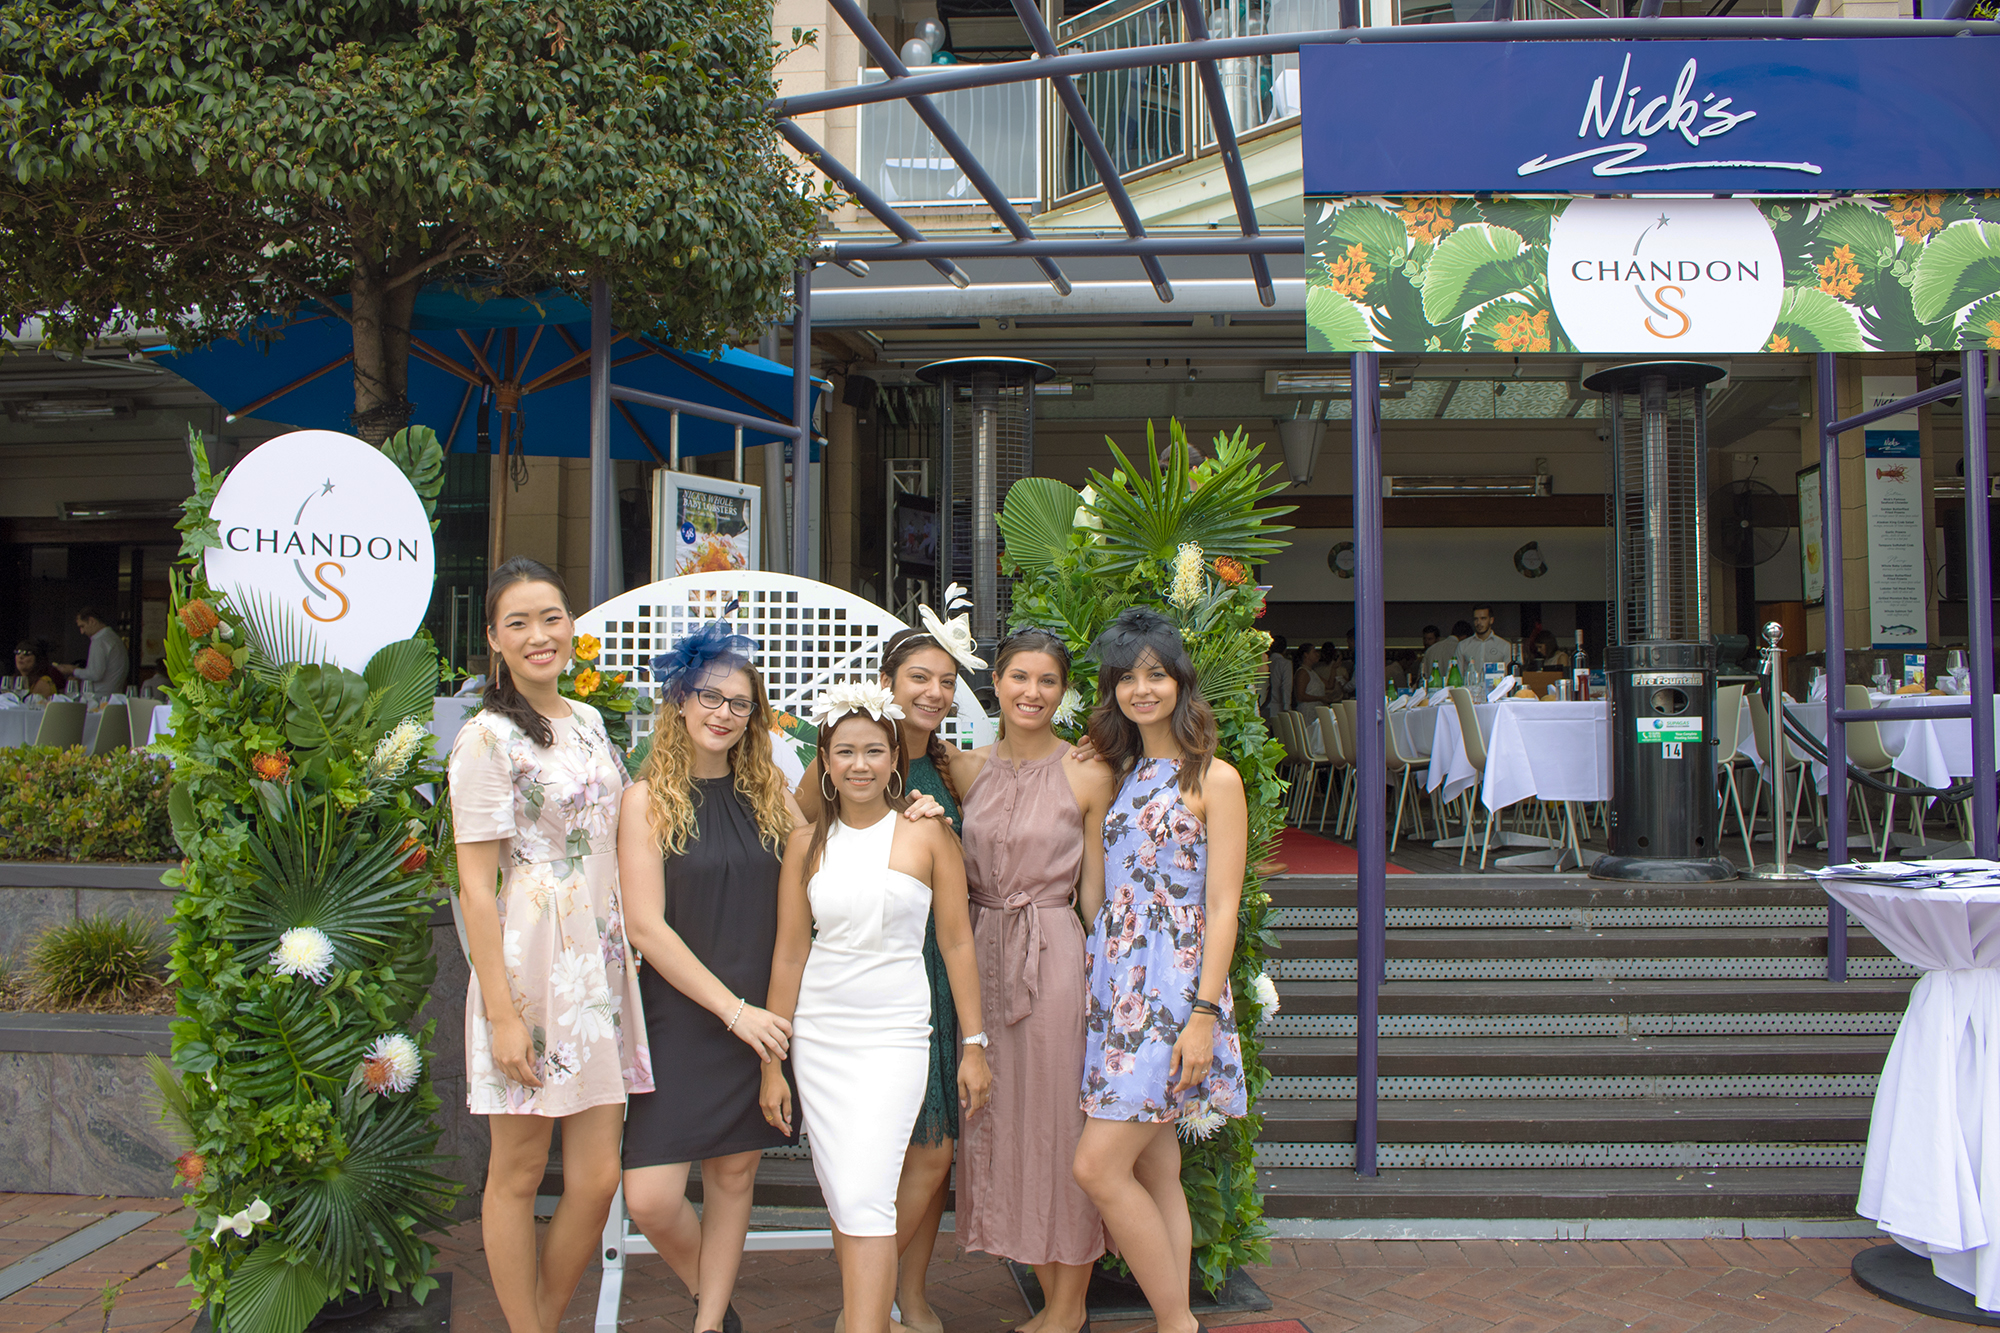 Melbourne Cup 2018 lady guests at floral photo booth